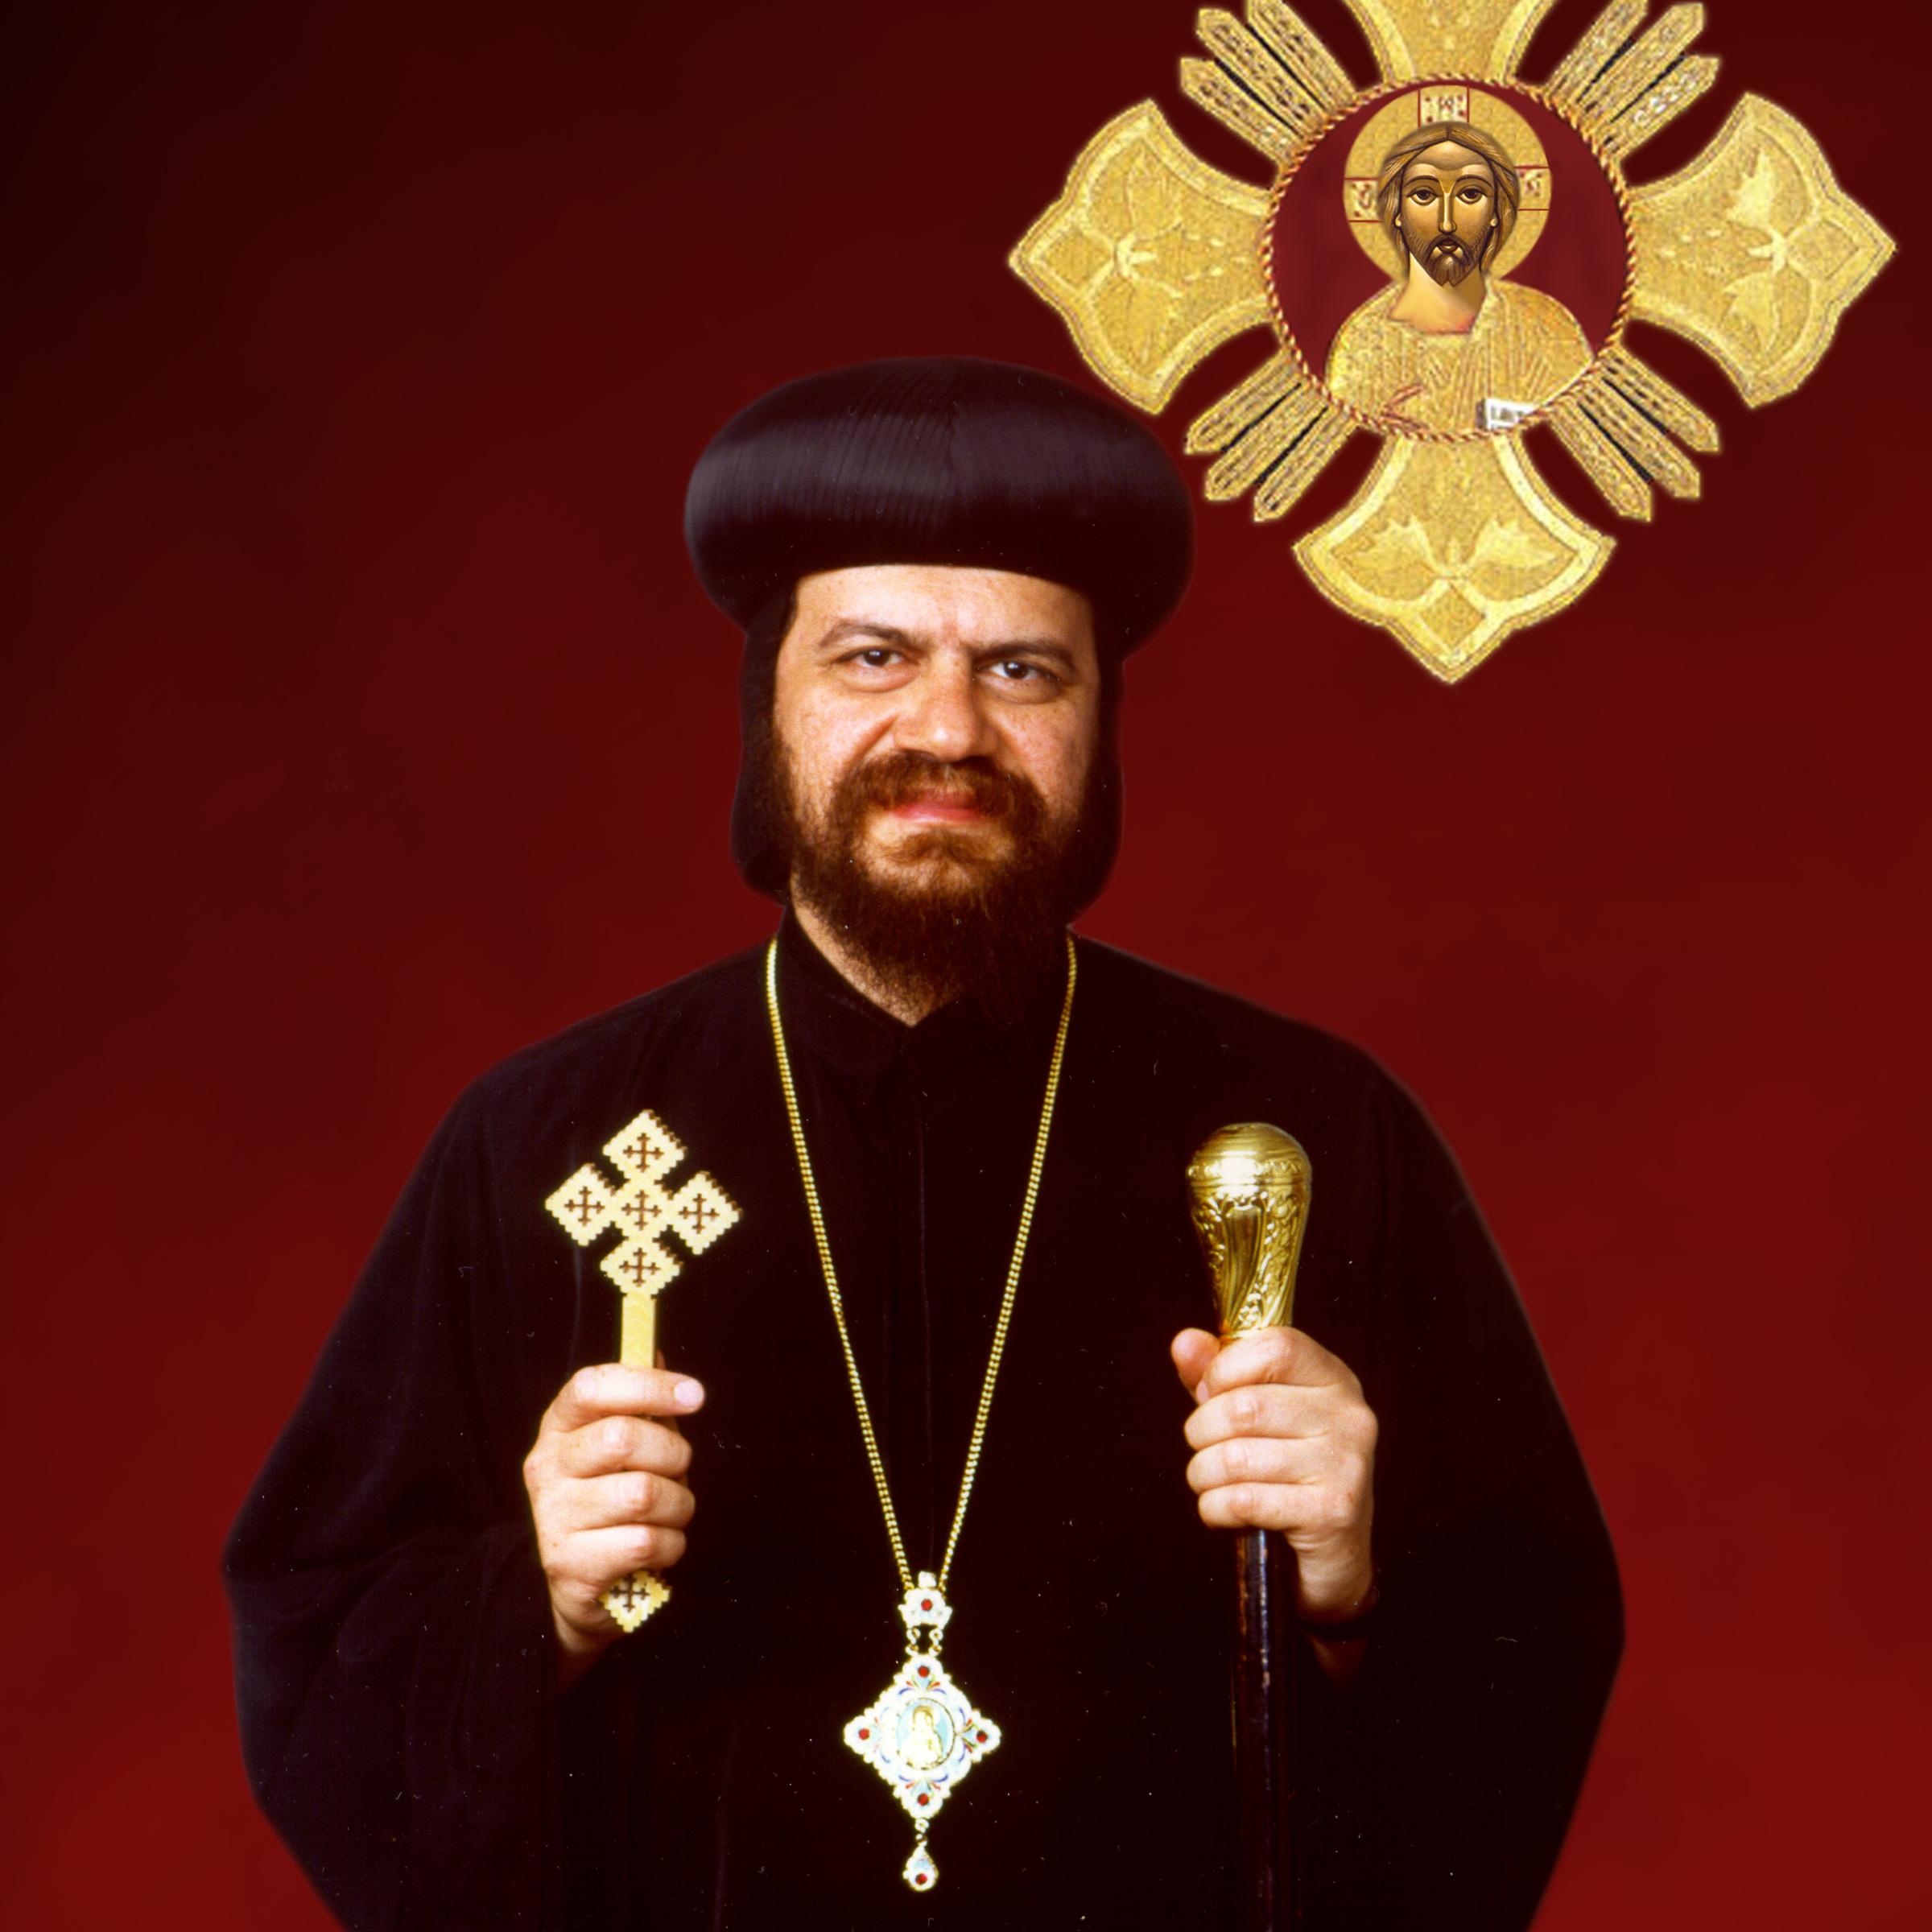 Blessing and attendance of His Eminence Metropolitan Serapion